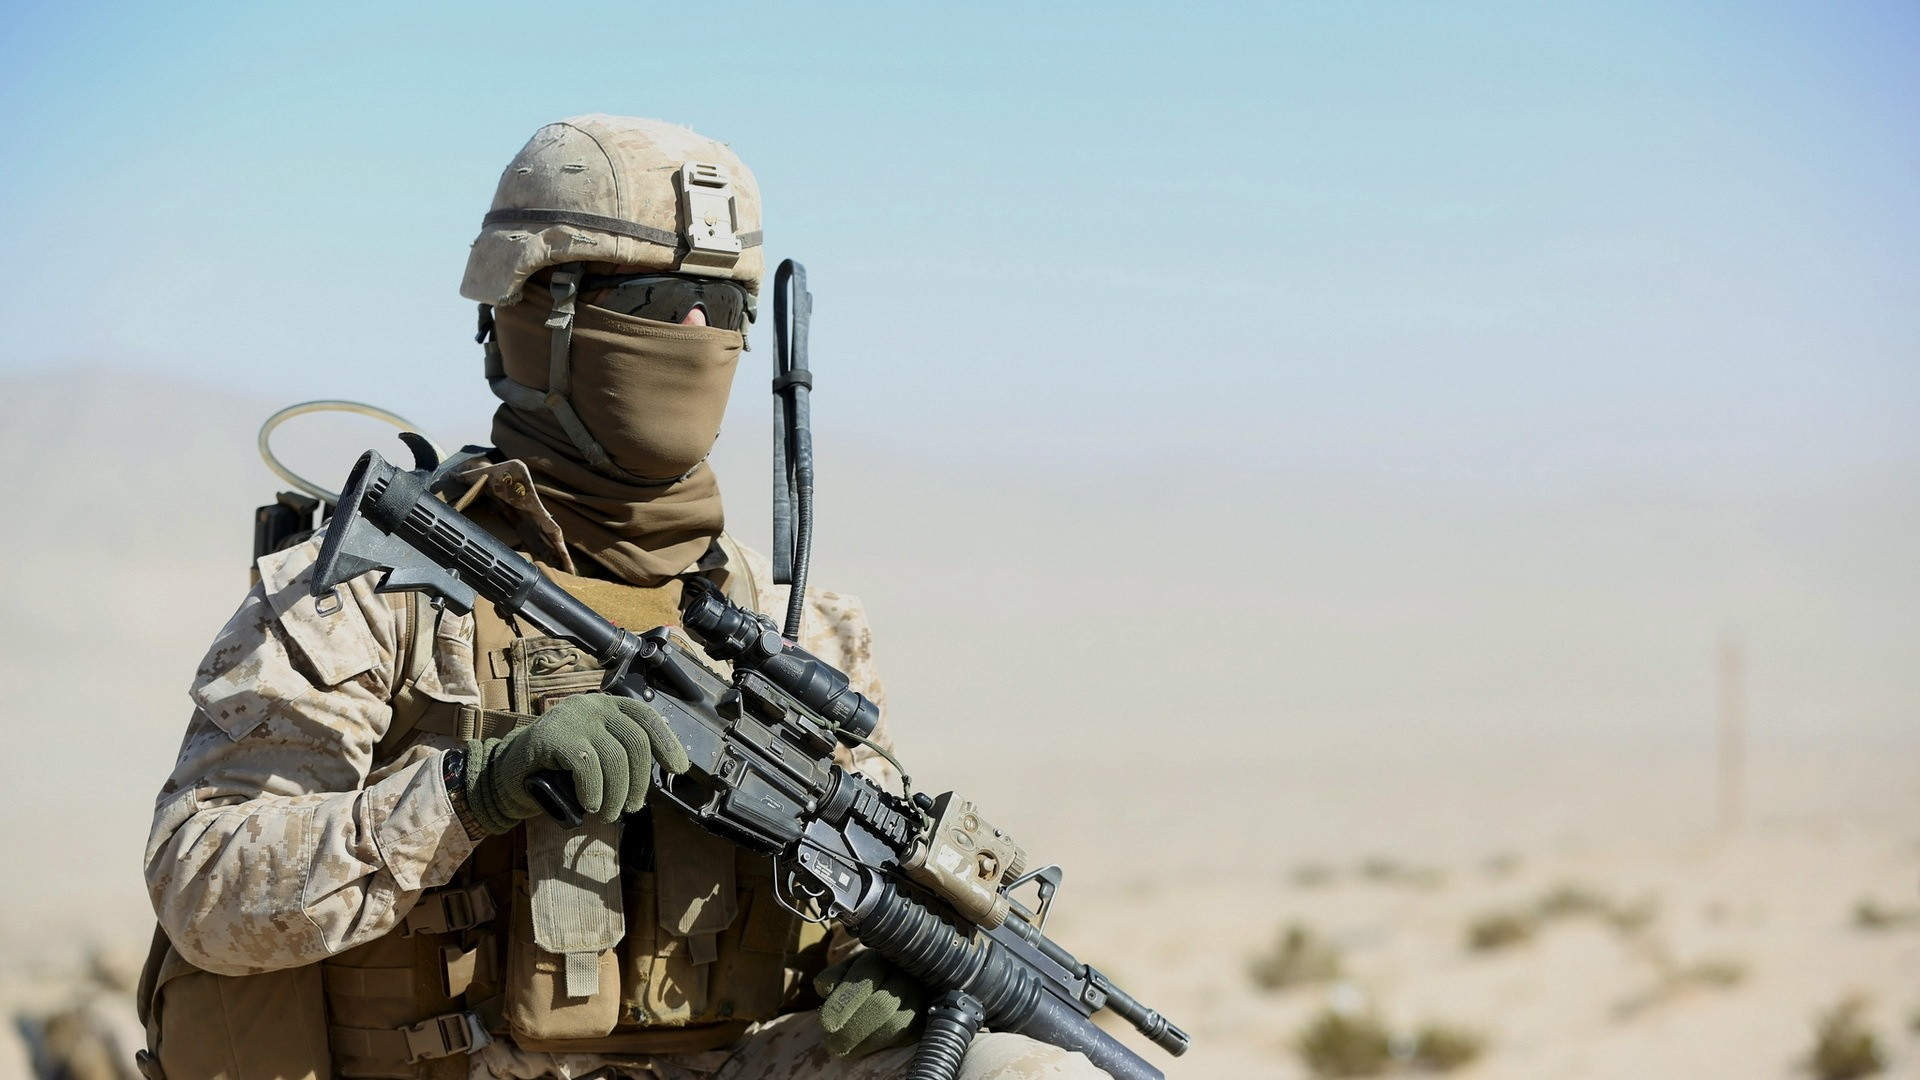 Army Wallpaper Collection For Free Download   HD Wallpapers   Pinterest    Army wallpaper and Wallpaper